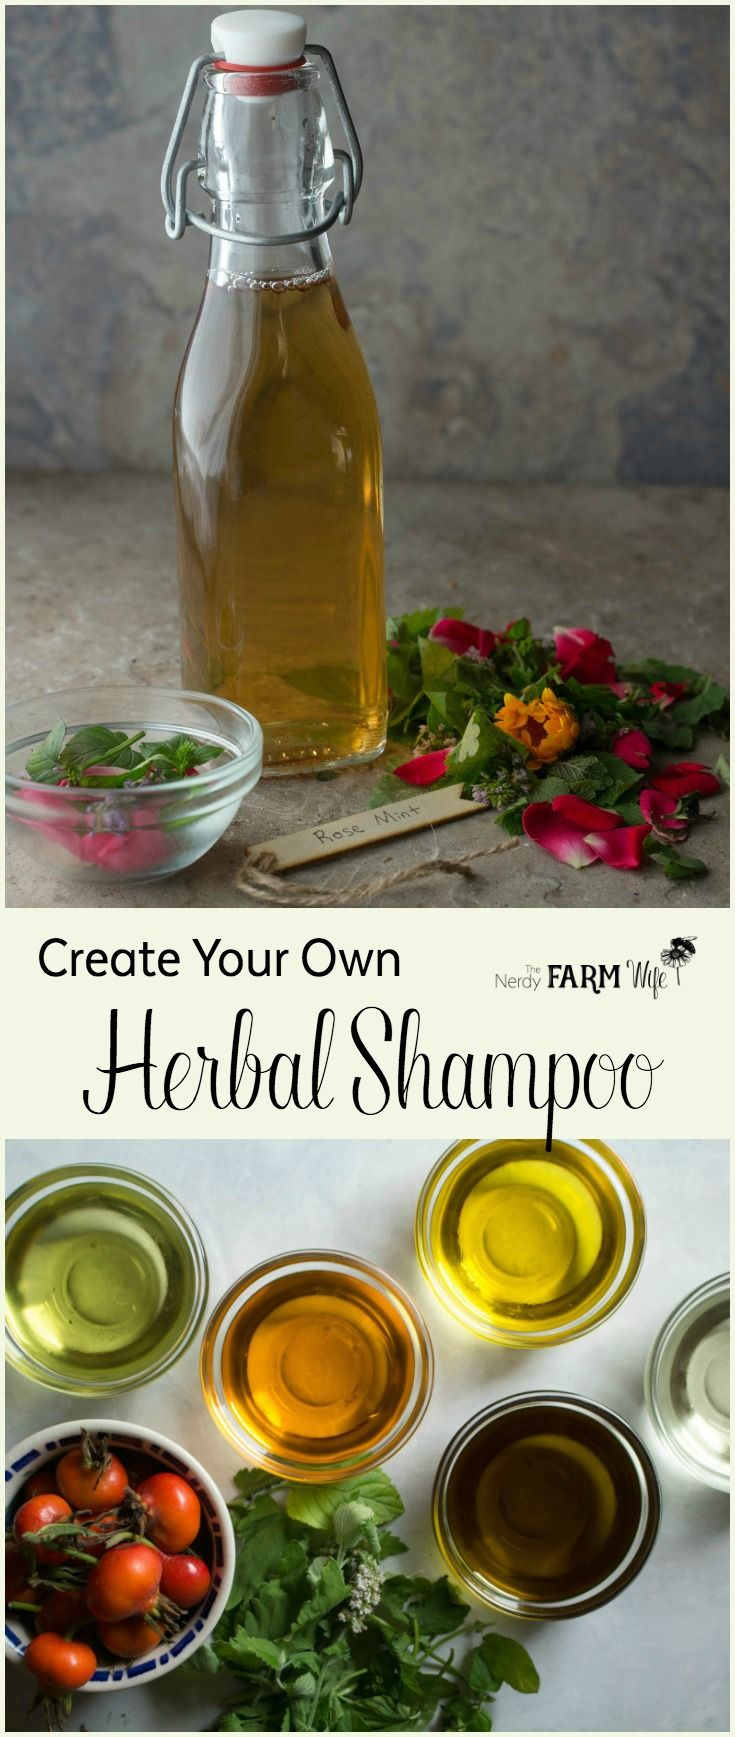 How to Make Your Own Homemade Herbal Shampoo and customize it with nourishing herbs and essential oils.